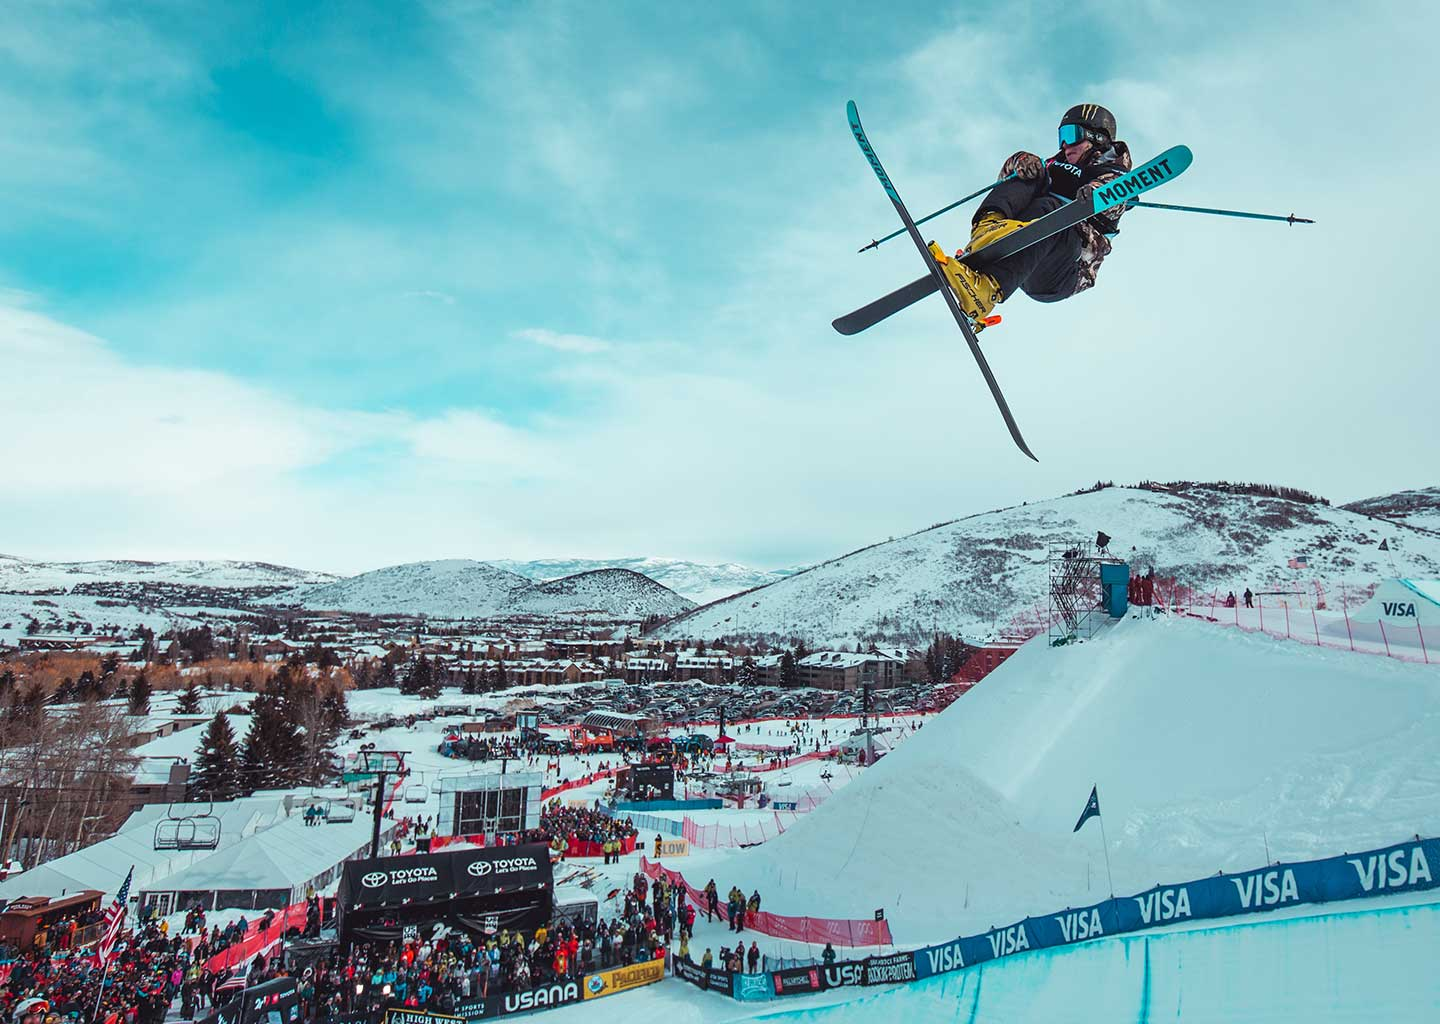 Freestyle Skier Flying Through The Air at Park City Mountain Resort